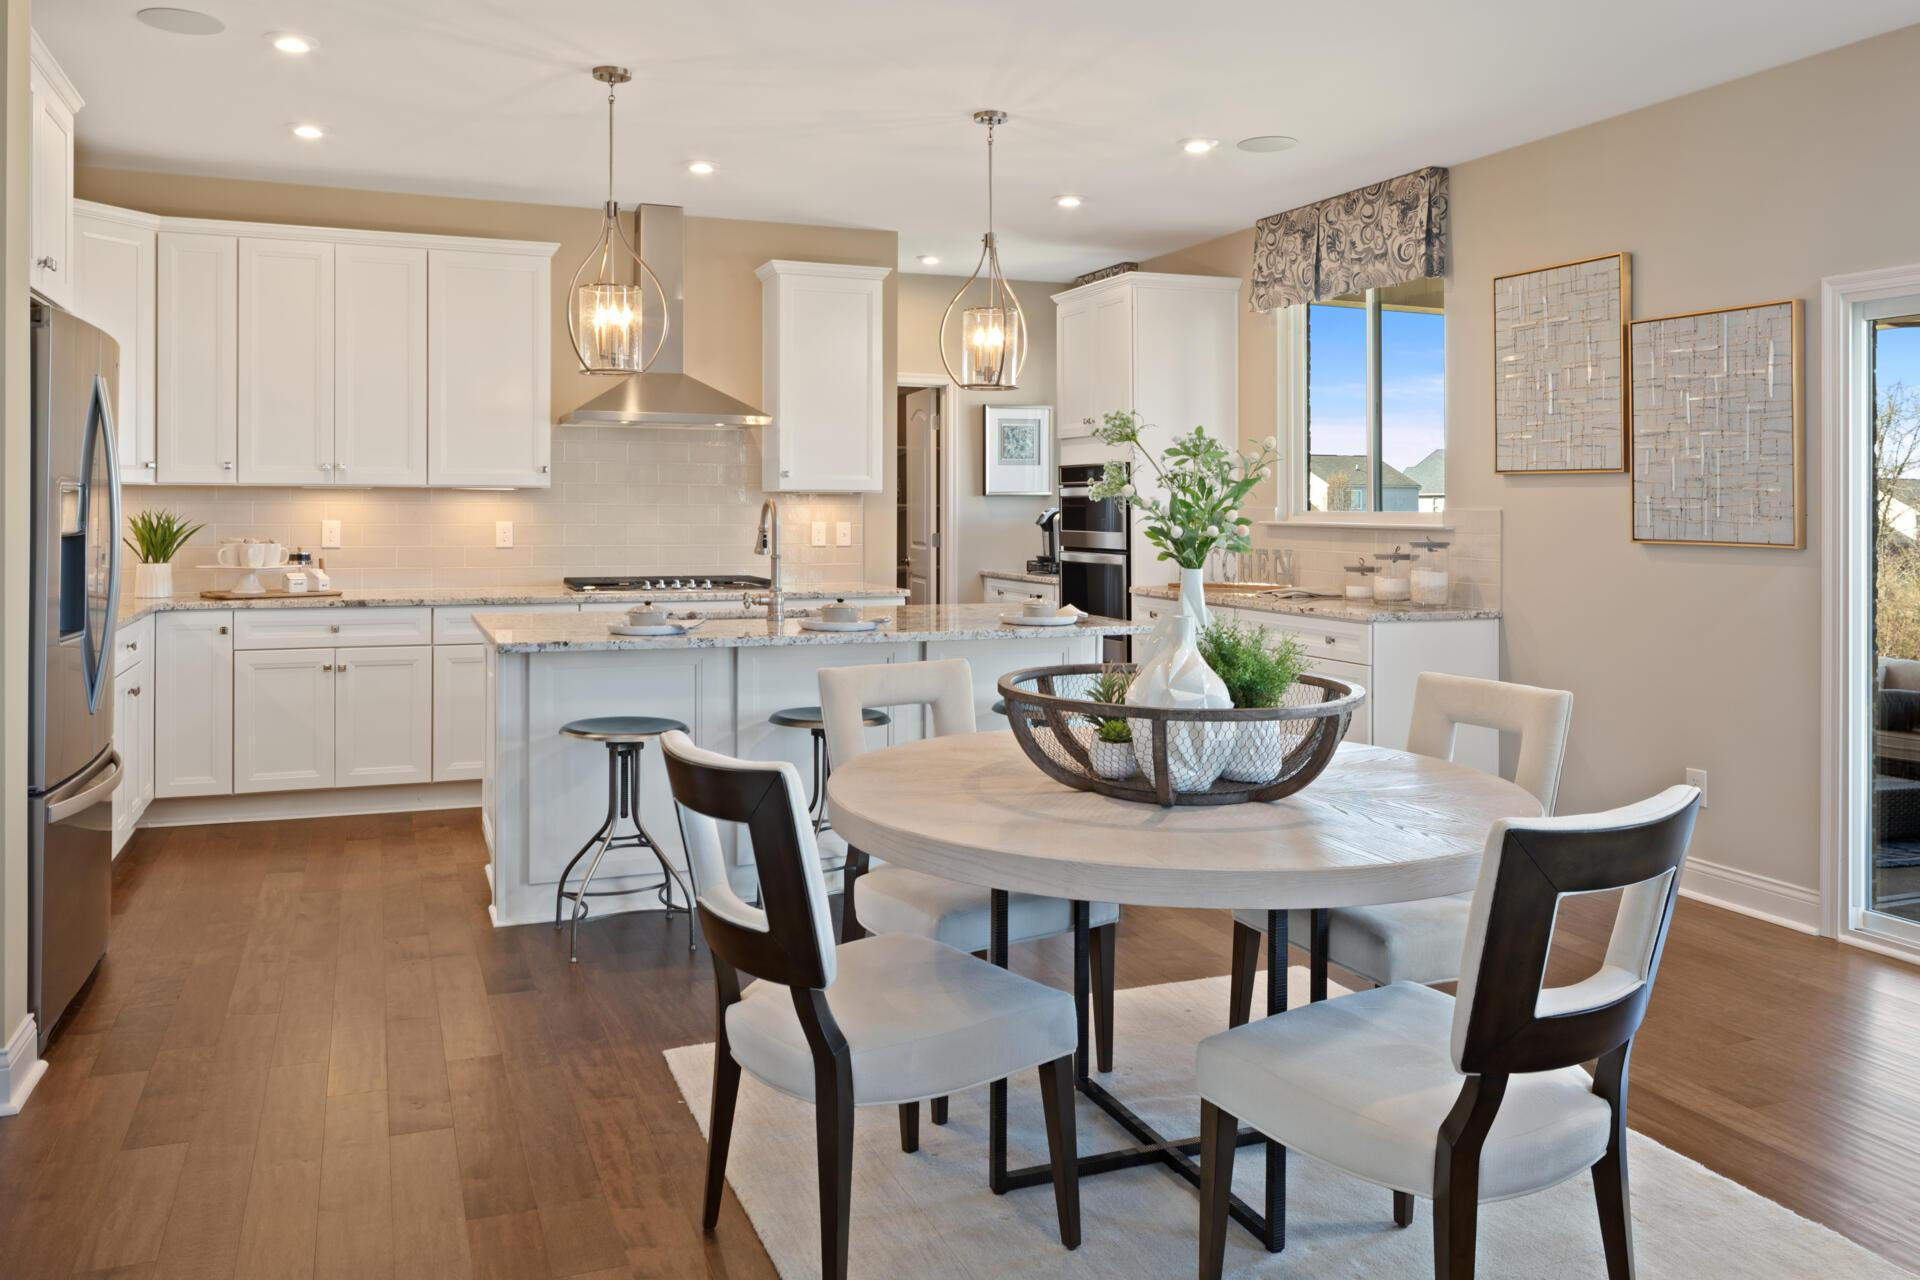 Kitchen featured in the Buchanan By Drees Homes in Cincinnati, OH